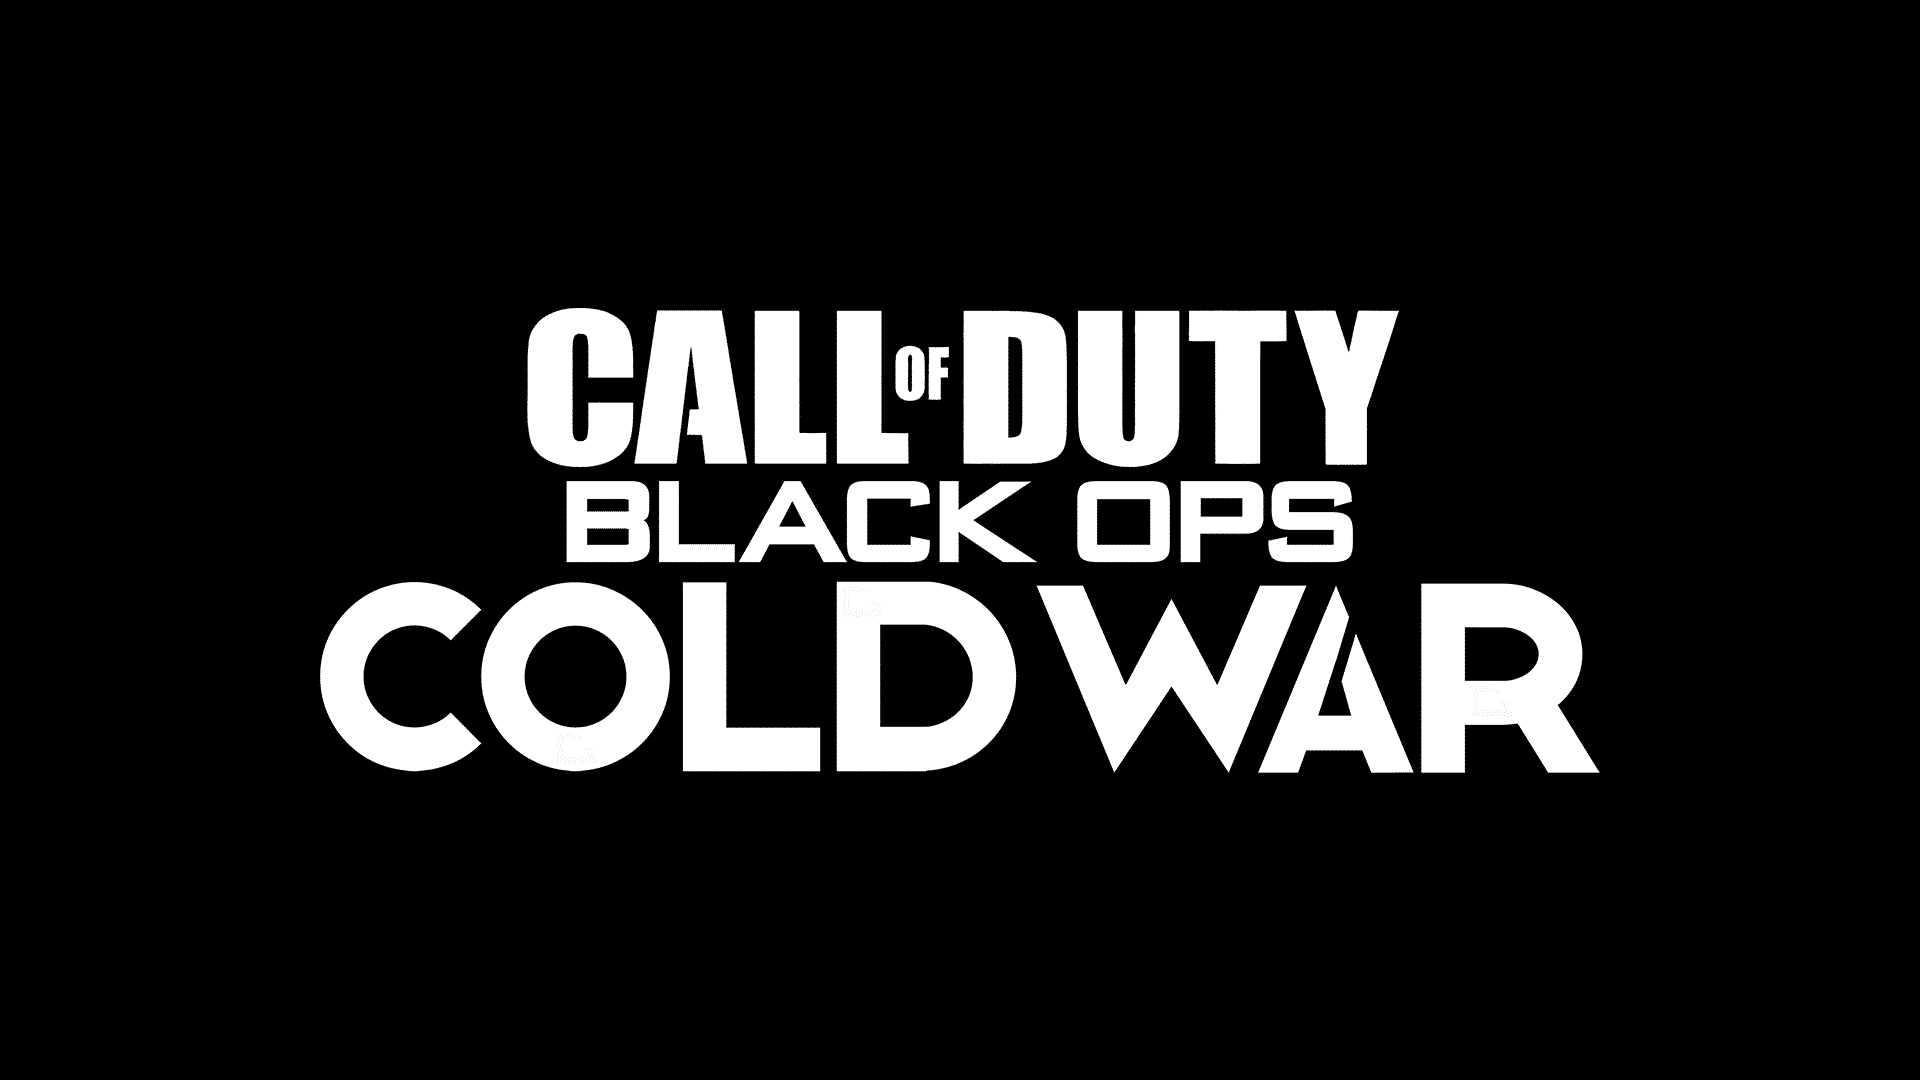 Call Of Duty Black Ops Cold War Logo Leaked Charlie Intel